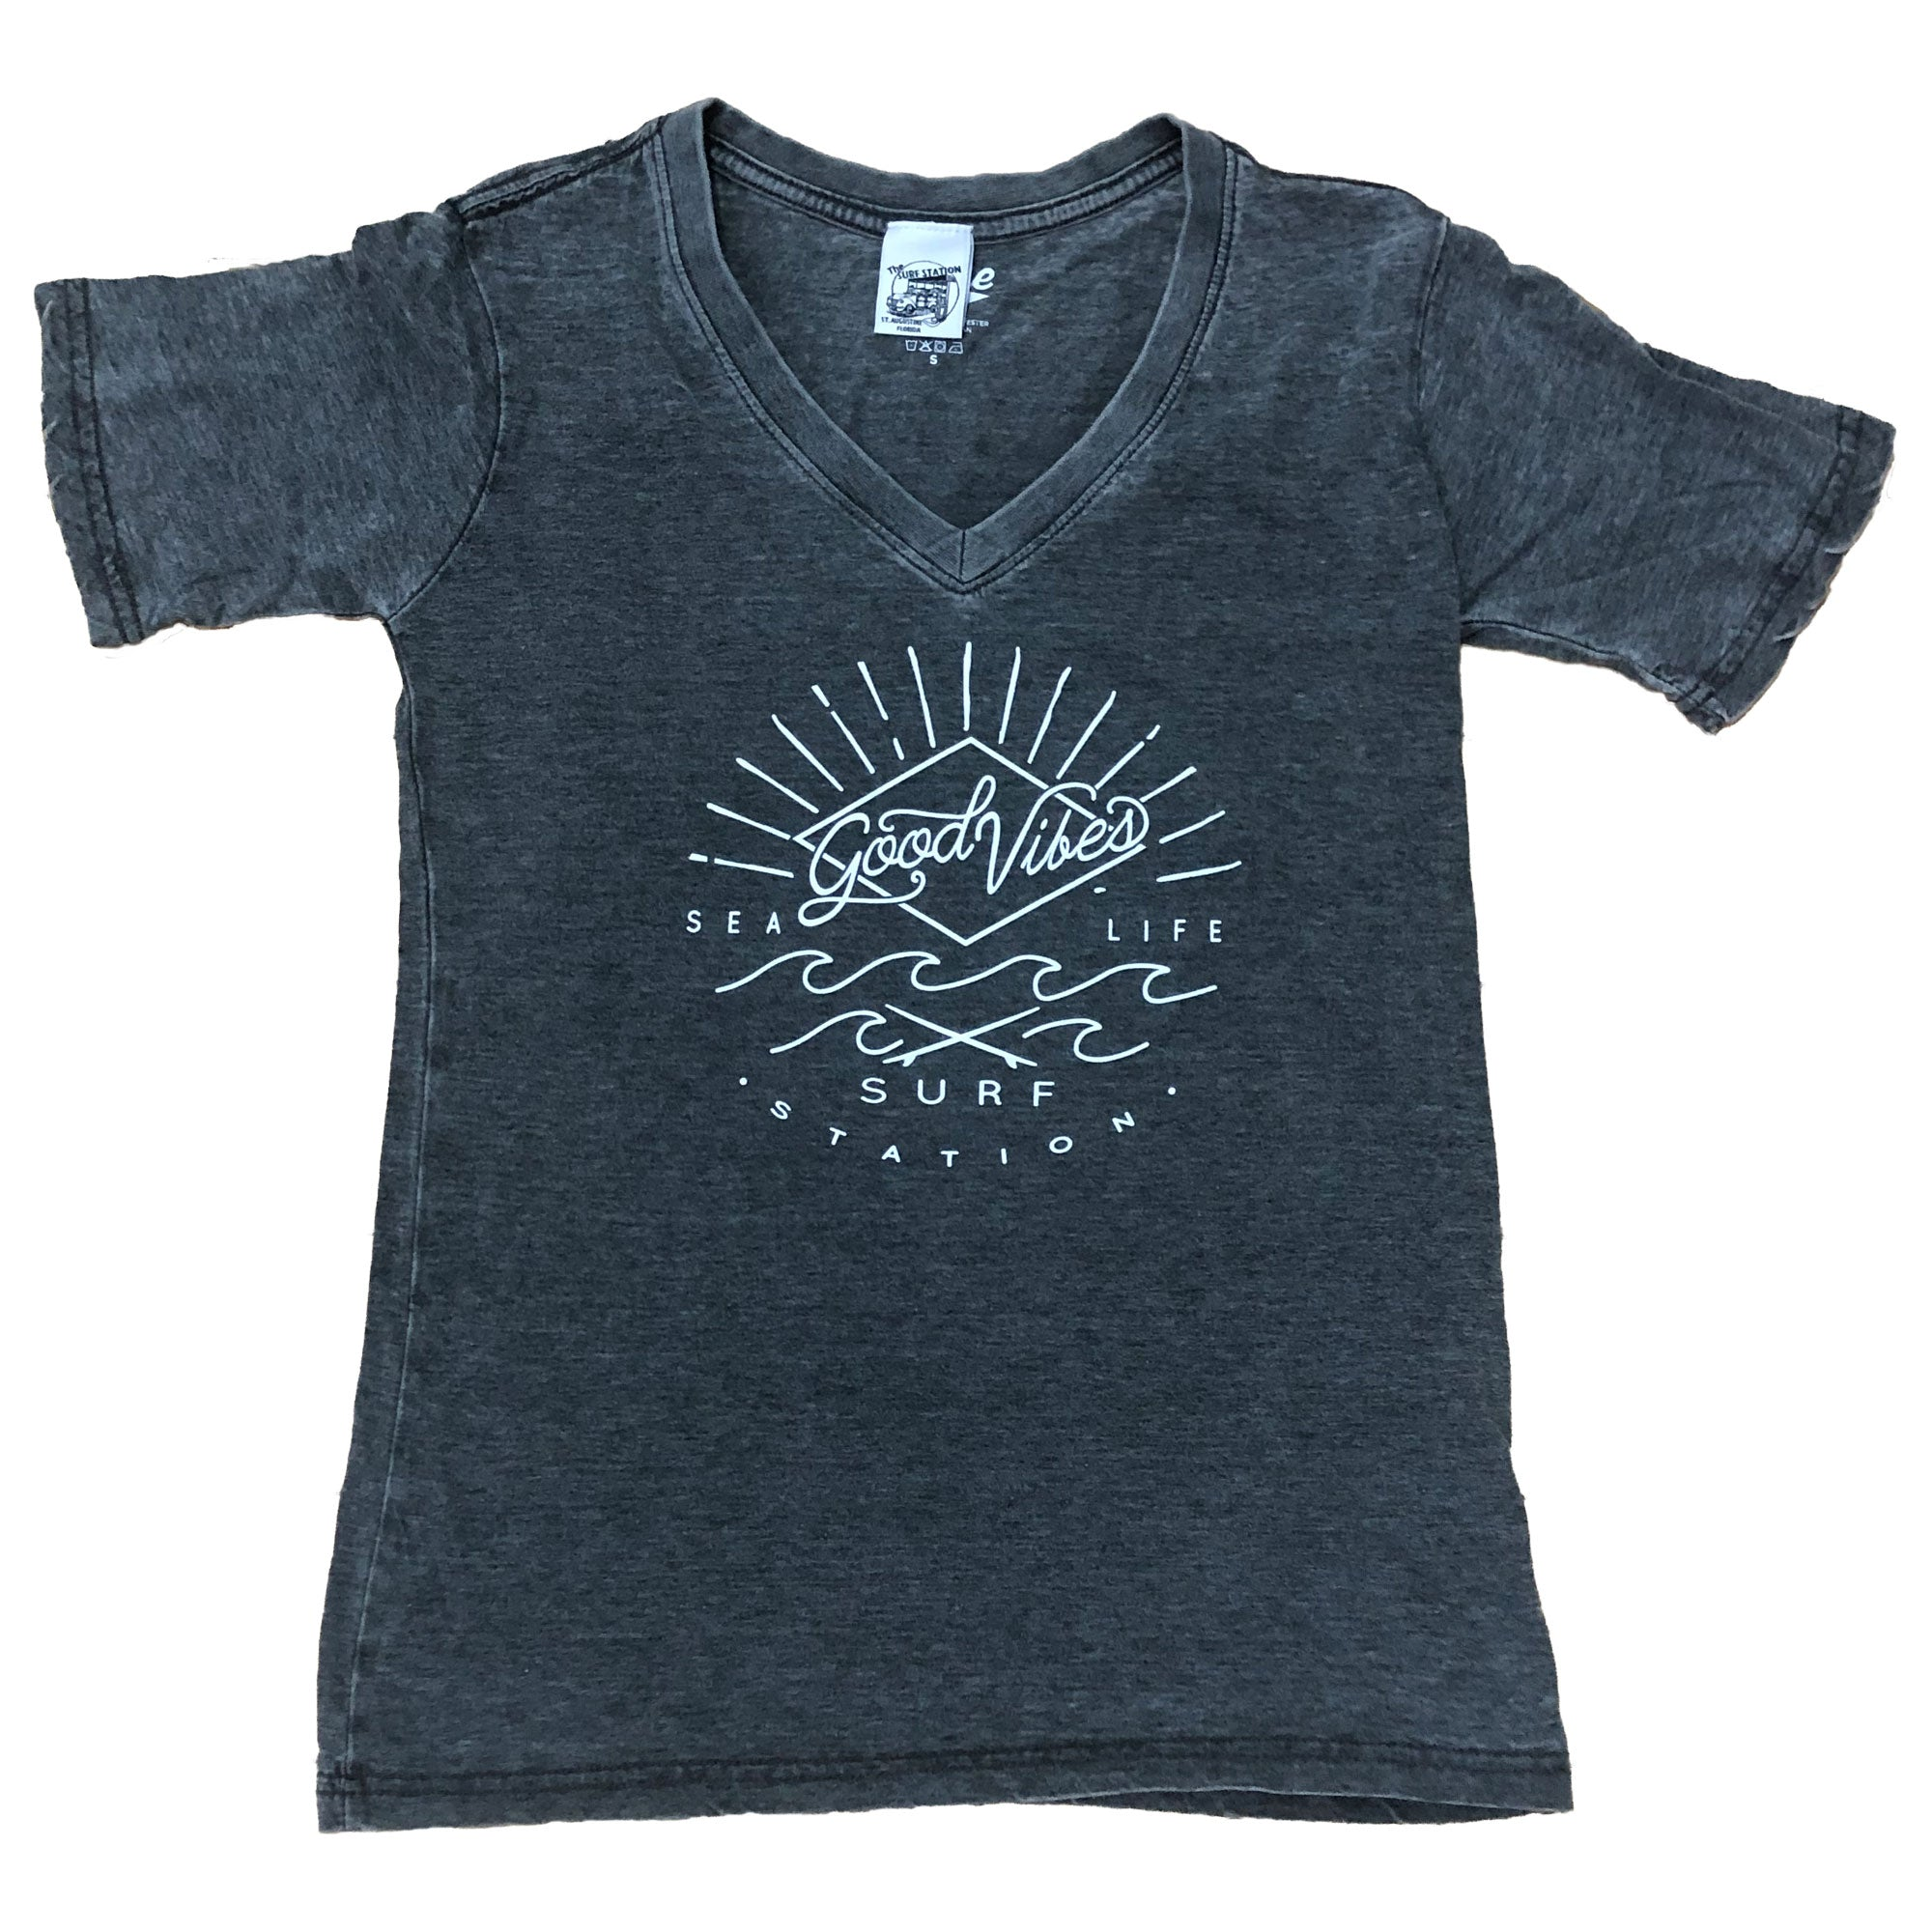 Surf Station Good Vibes Women's V-Neck T-Shirt